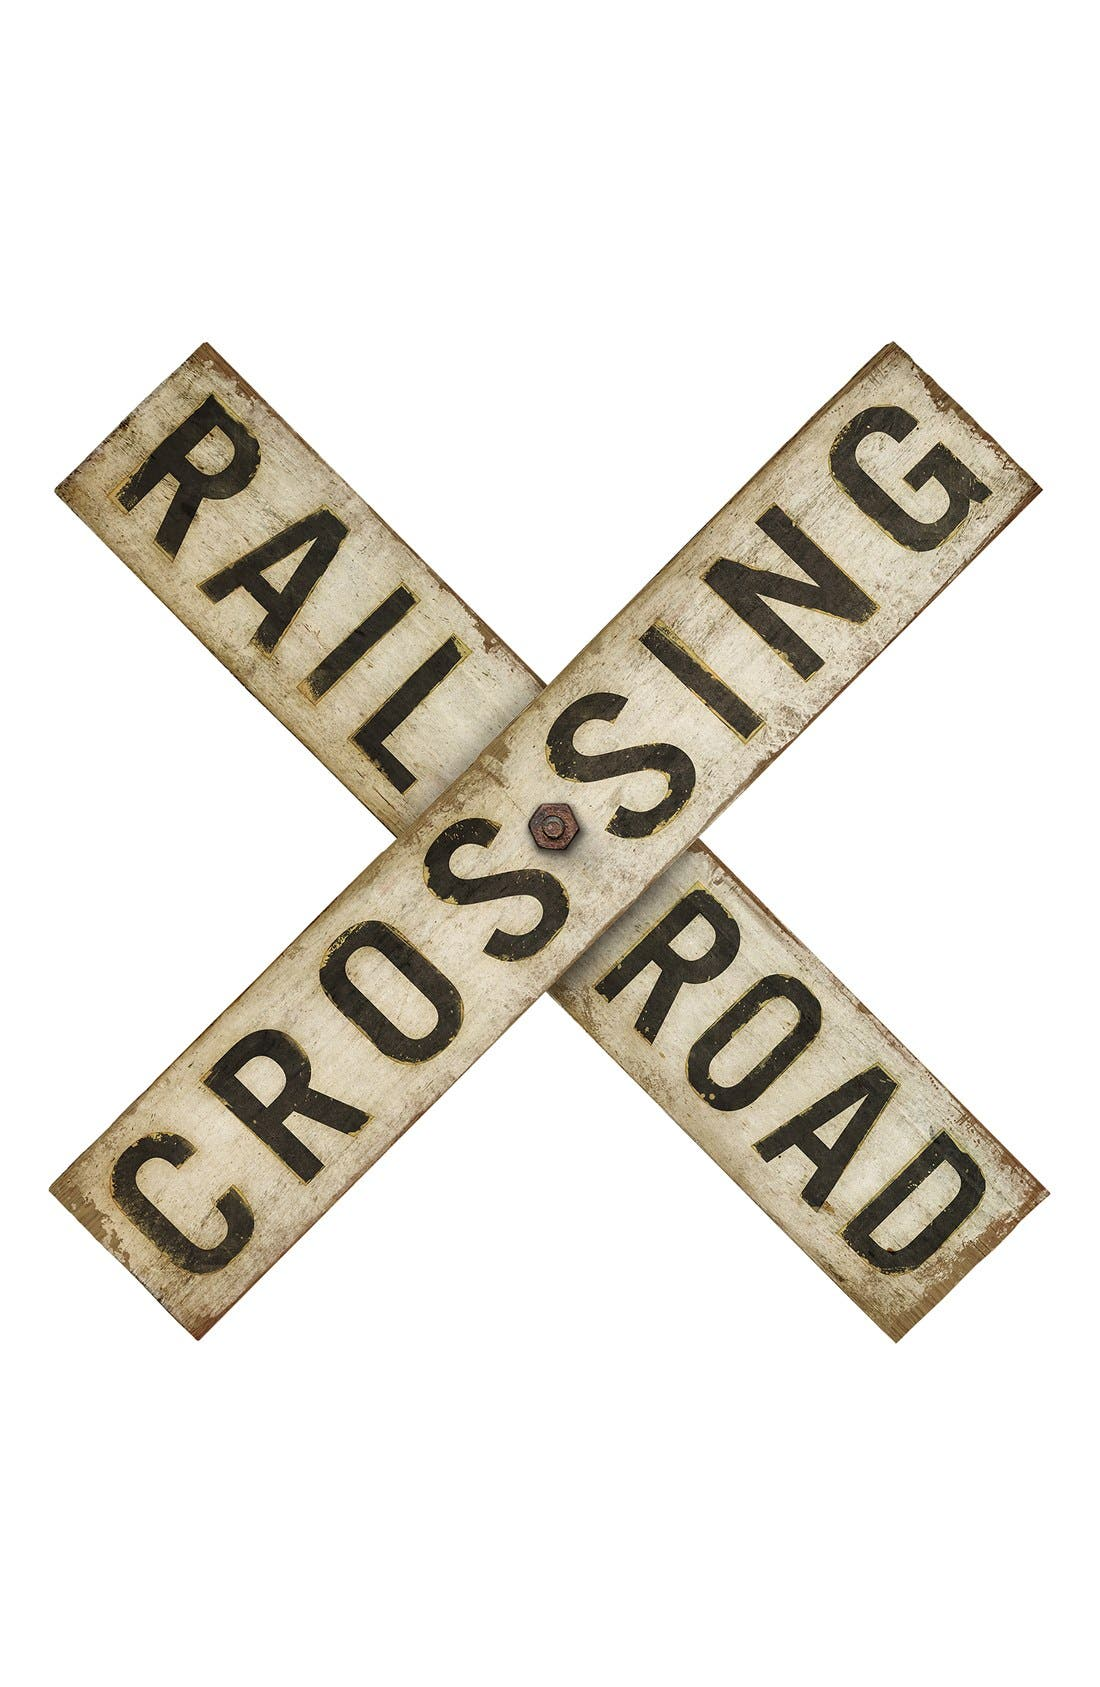 Alternate Image 1 Selected - Spicher and Company 'Railroad Crossing' Vintage Look Sign Artwork